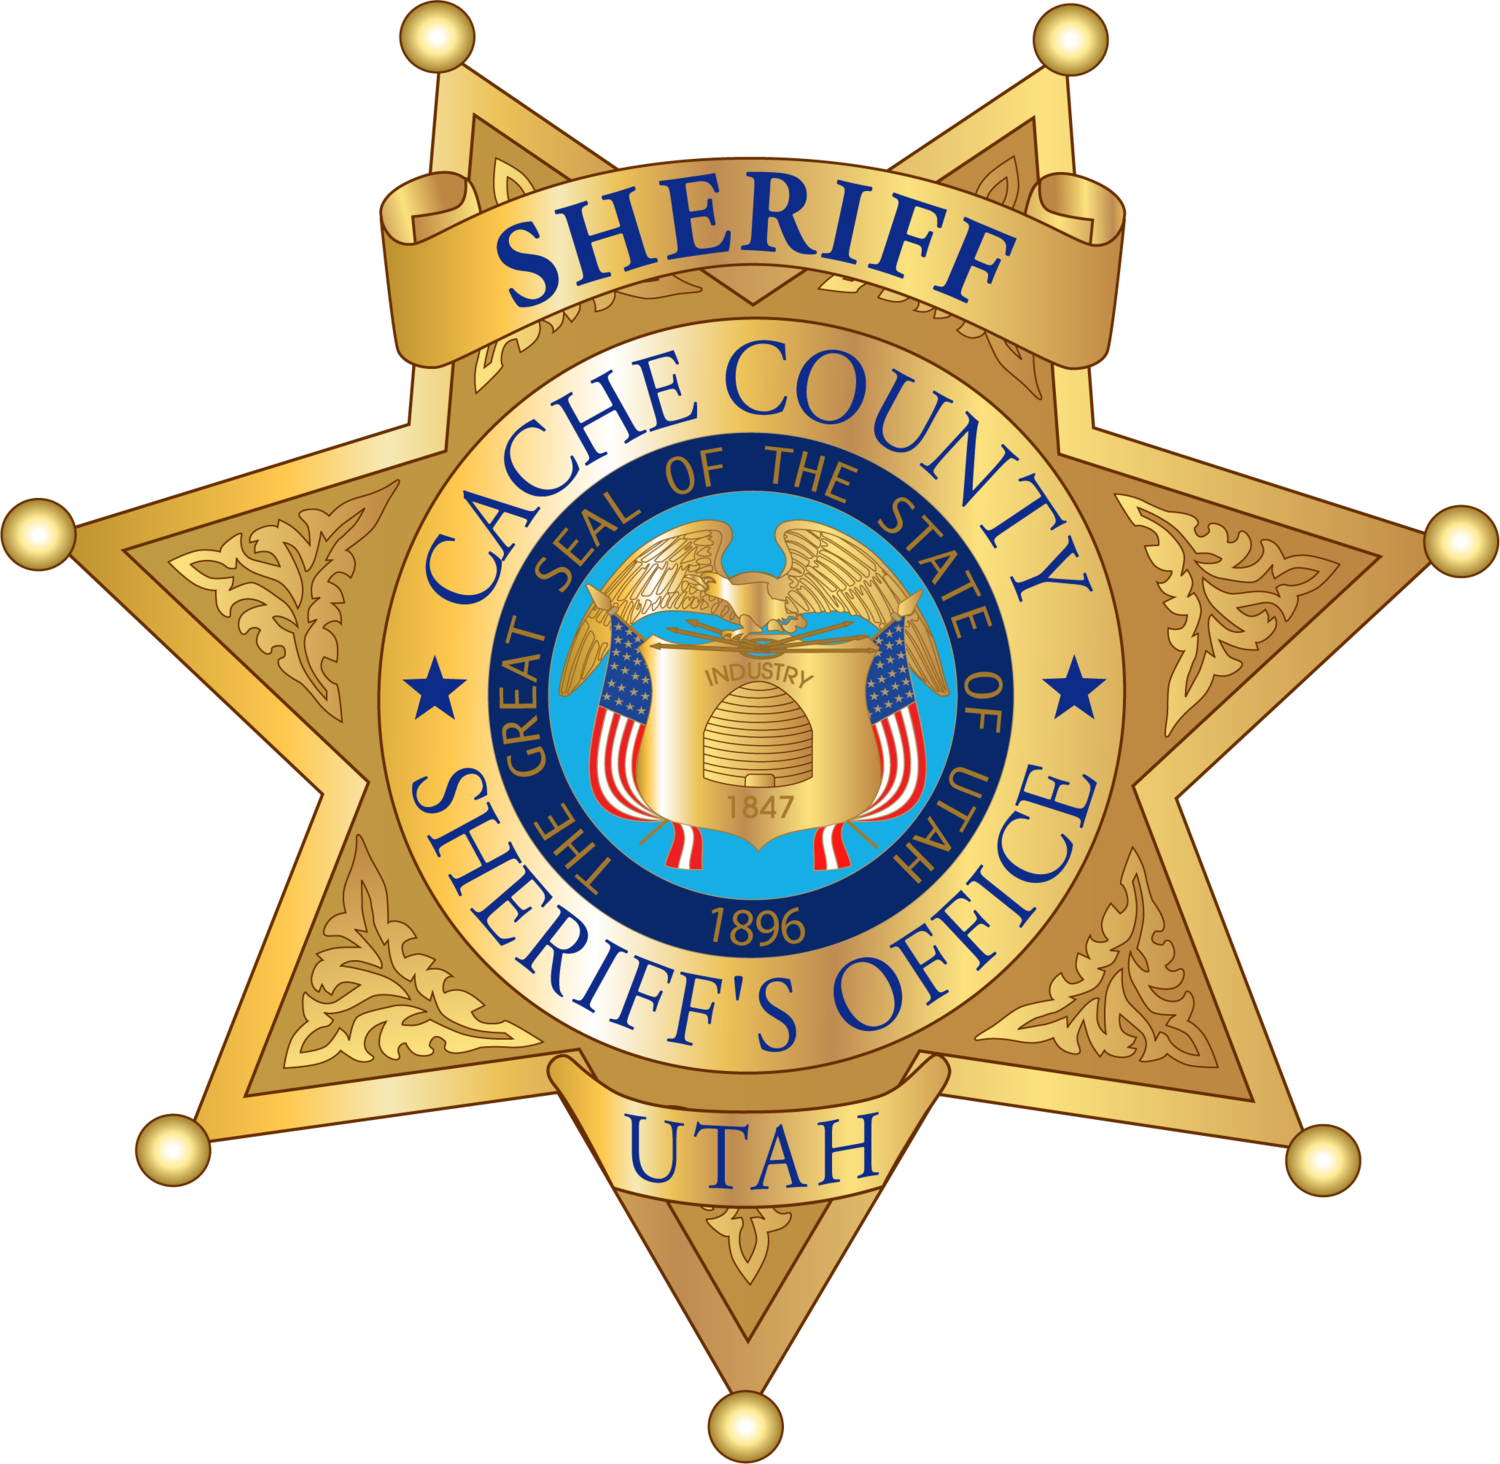 Join the Cache County Sheriff's Office